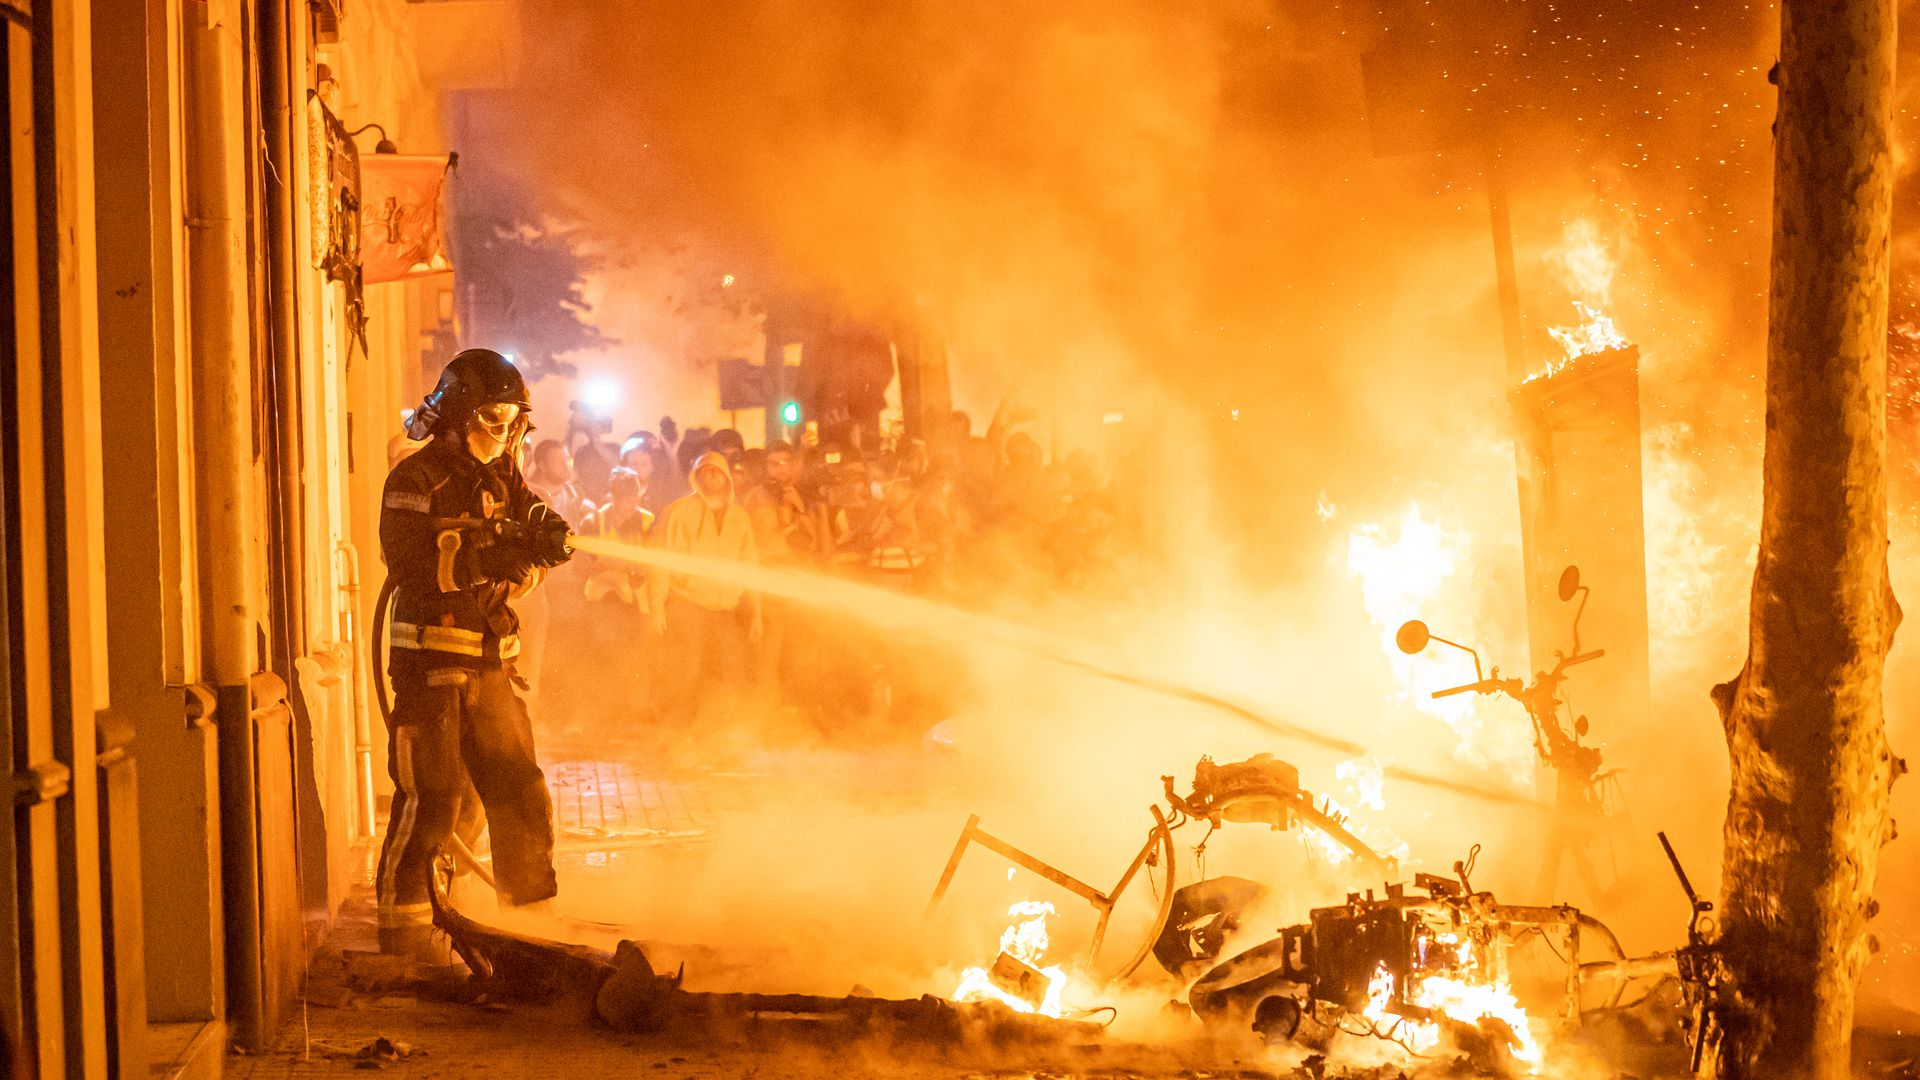 Barcelona firefighters put out fires during protests on October 16, 2019 in Barcelona